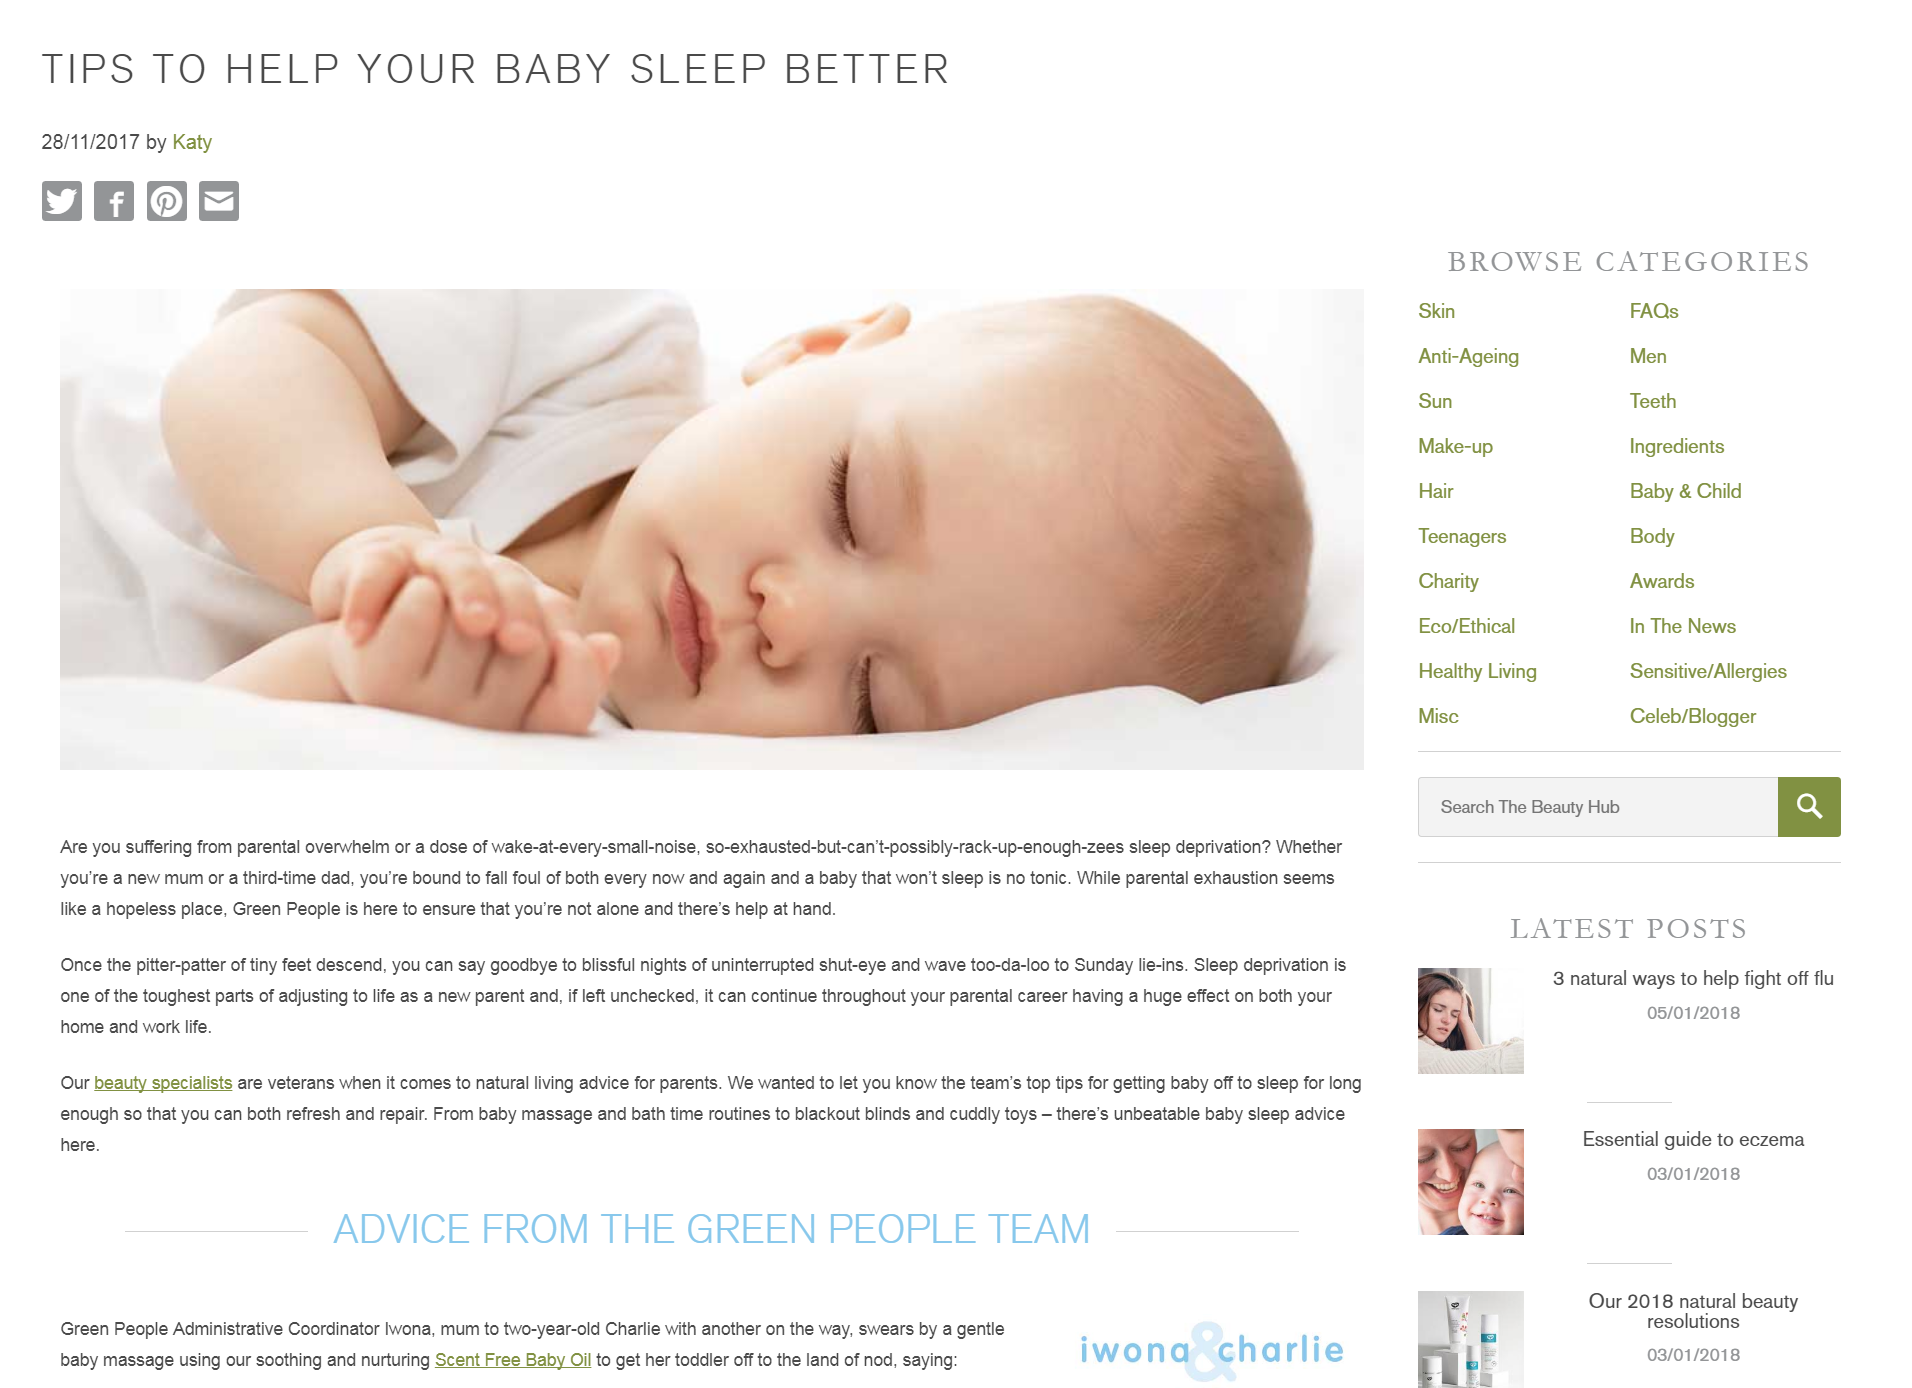 Tips to help baby sleep better - Green People Beauty Hub blog